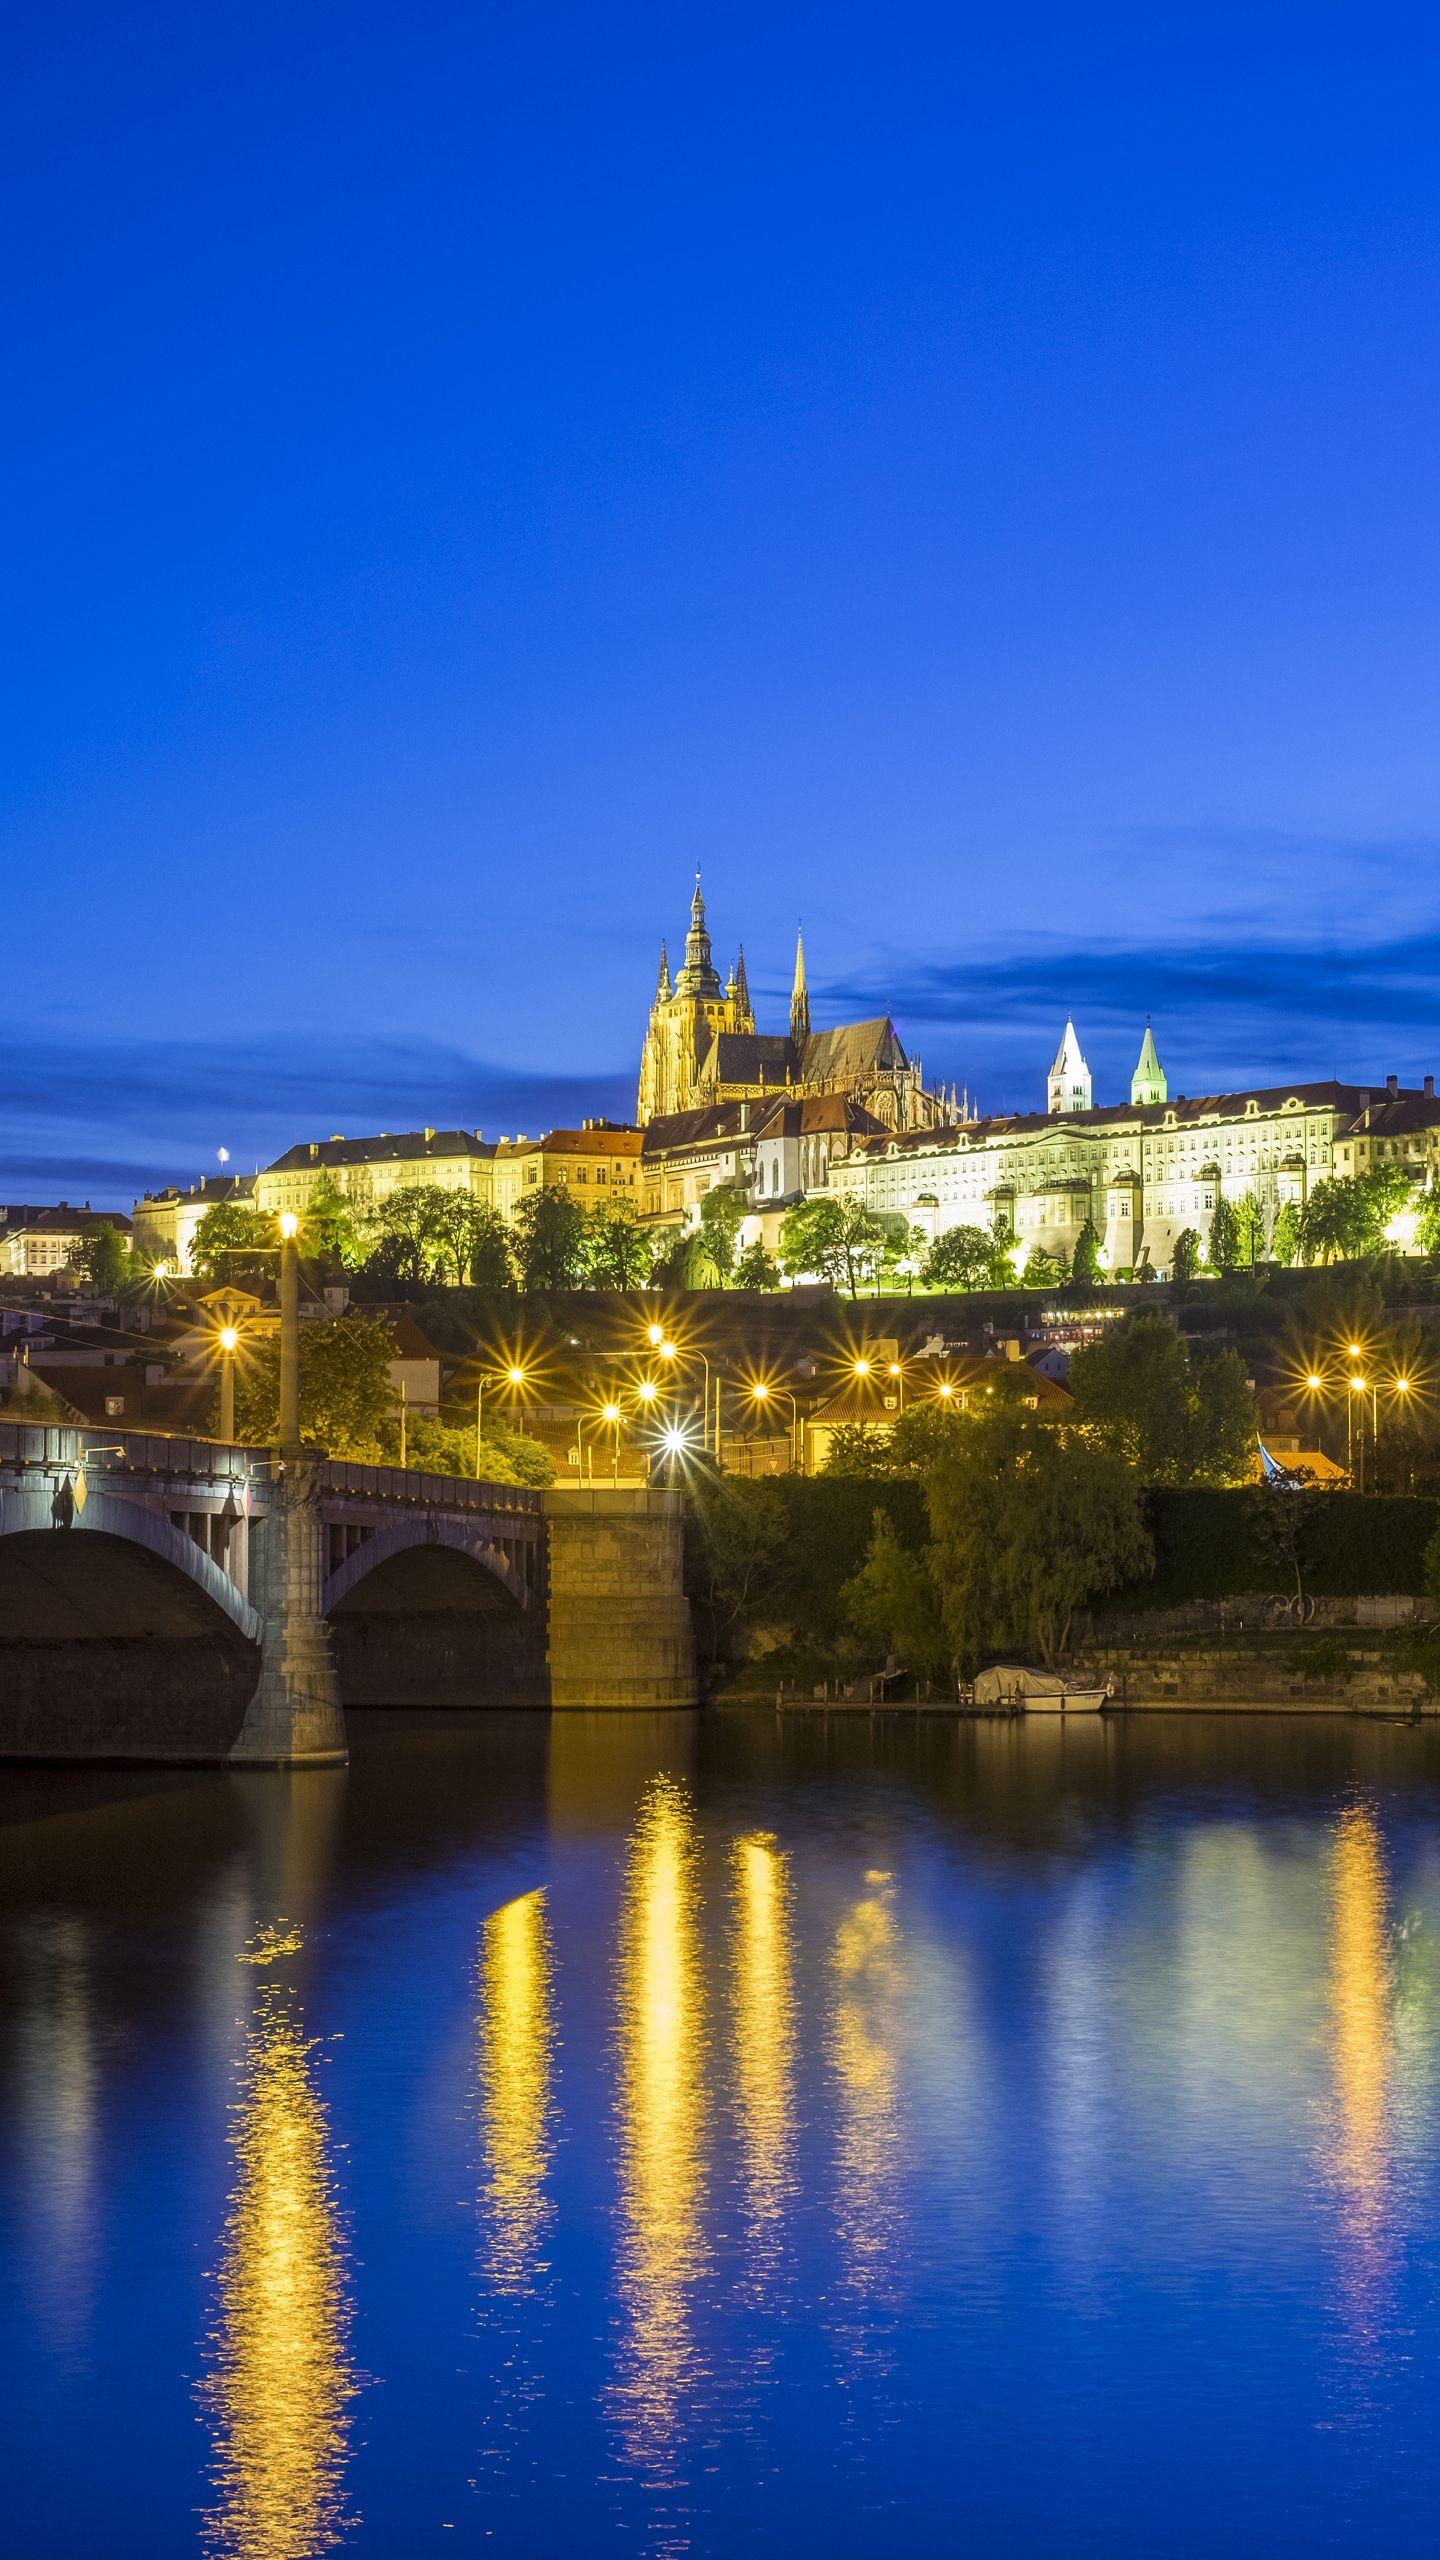 Czech Republic - Prague. With its ancient history, diverse architecture, beautiful colors and rich culture, it attracts tourists from all over the world. ©Vision China